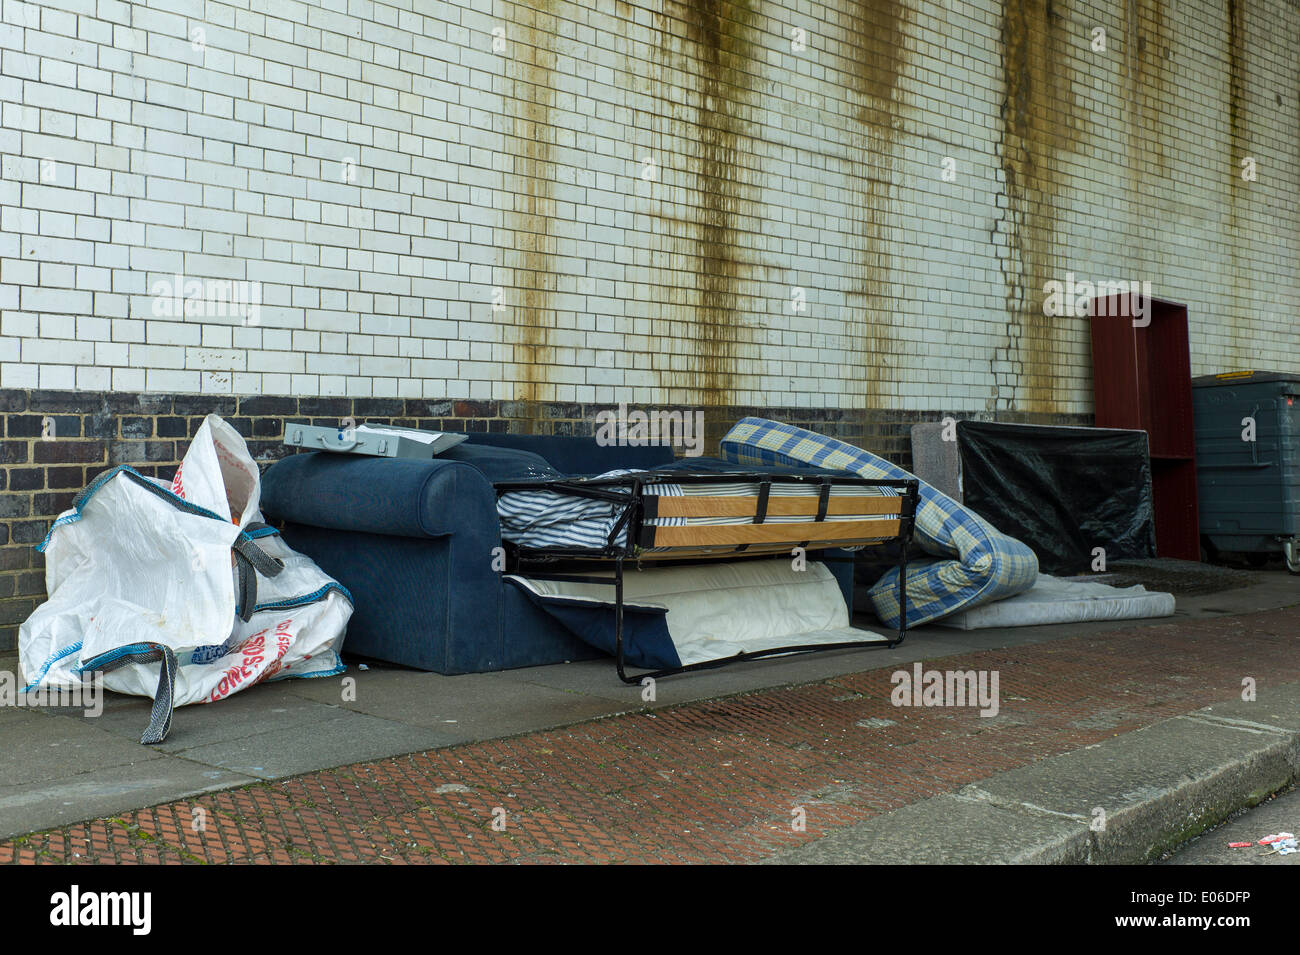 London, UK. 04th May, 2014. London Borough of Barnet, Golders Green NW11 thought of as an affluent area of London has a big problem with fly-tipping, and in particular the illegal dumping of beds and mattresses. © Rena Pearl/Alamy Live News - Stock Image